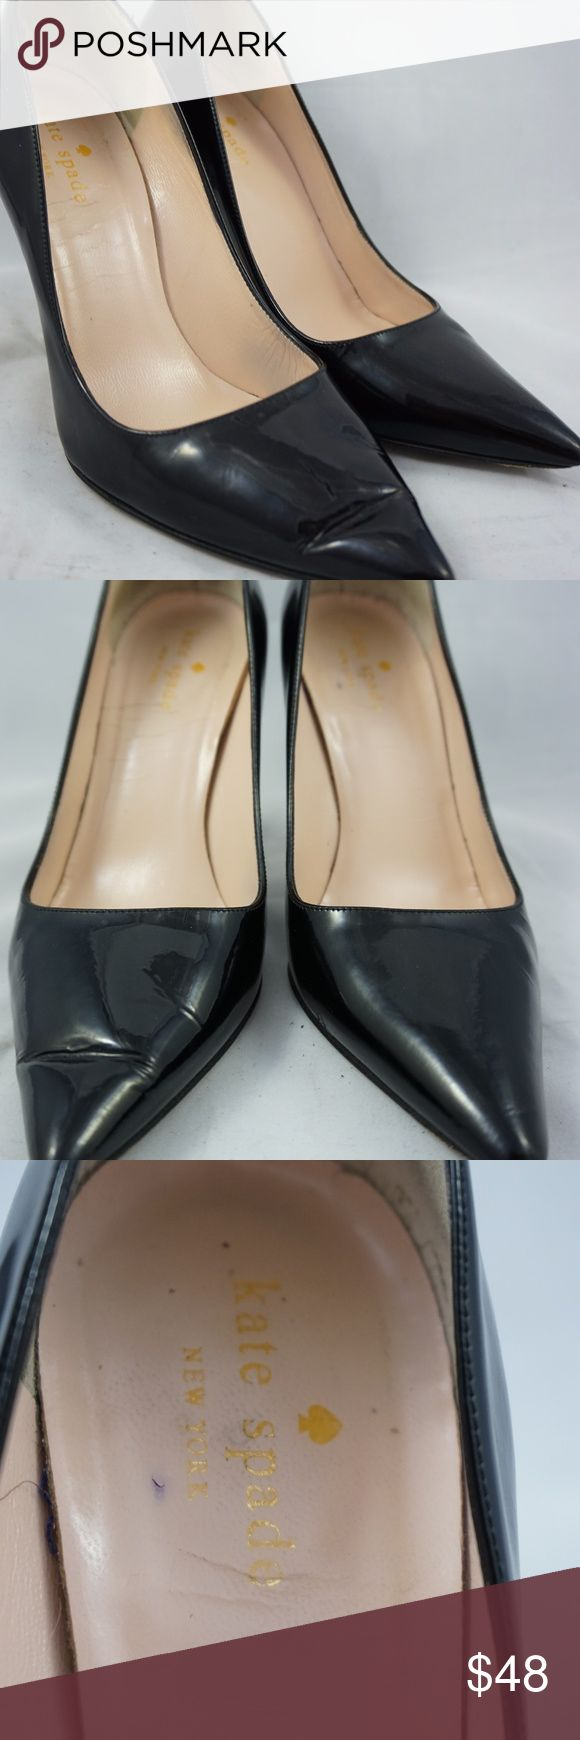 """Kate Spade Point Toe Black Patent Pumps 6.5B Kate Spade black patent point toe pumps for sale. The heels are in bad condition and would be recommended to get them replaced. The insoles show heavy signs of wear and has creases on the pad. The top leather is in good condition with no major issues.   Size: 6.5B Length: 9"""" from back of heel to front of toe Width: 3"""" at widest part of soles Heel: 3.75""""  I will ship within 24 hours.   Thank you kate spade Shoes Heels"""